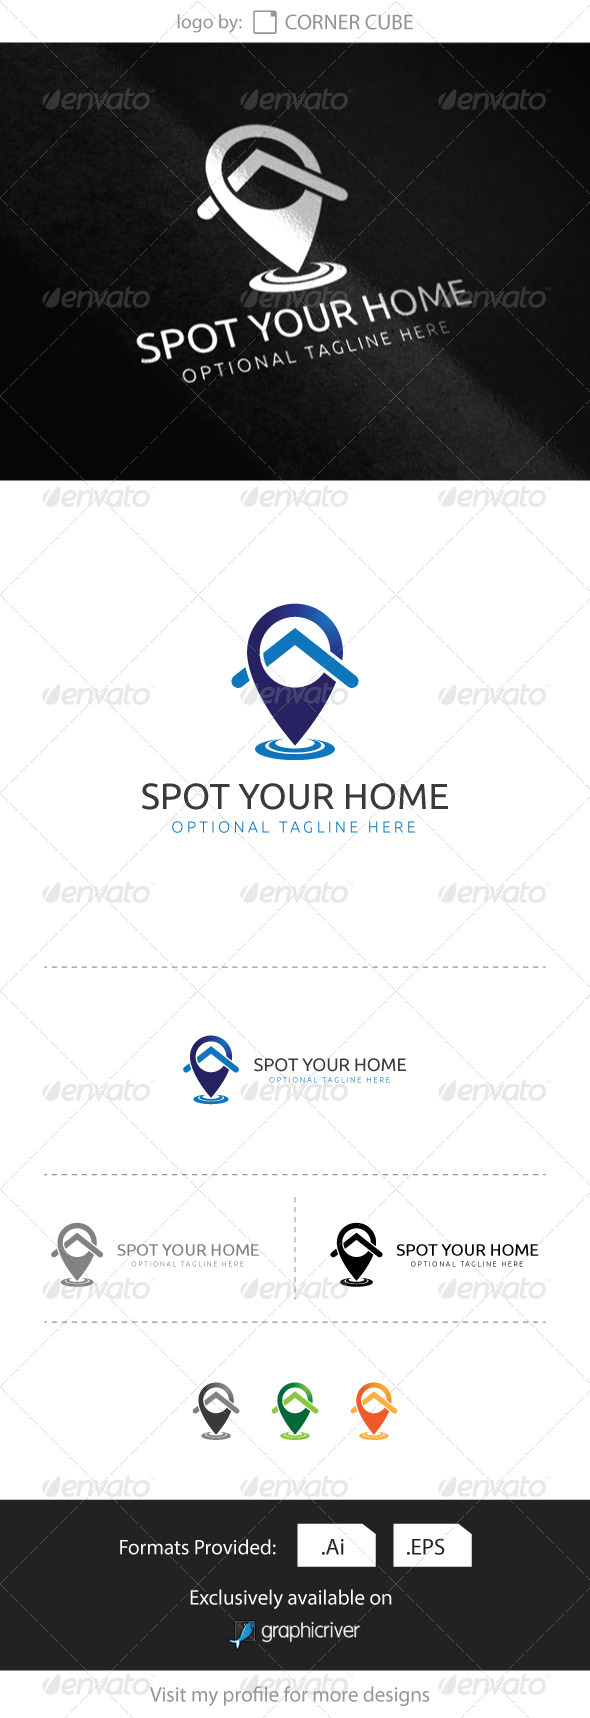 GraphicRiver Spot Your Home logo 8284848